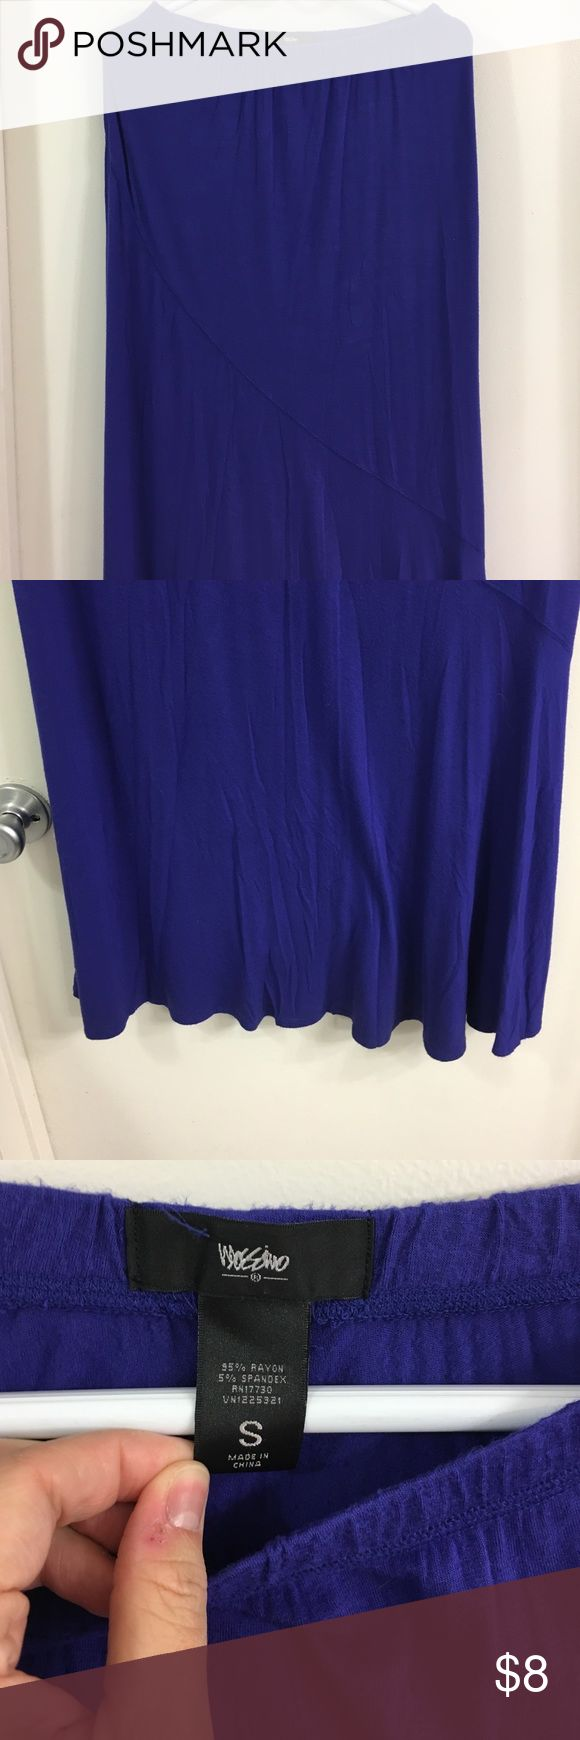 Royal Blue Maxi Skirt Royal Blue Maxi Skirt. Super long. Good condition. No fading. Says small but could fit up to large. Mossimo Supply Co Skirts Maxi